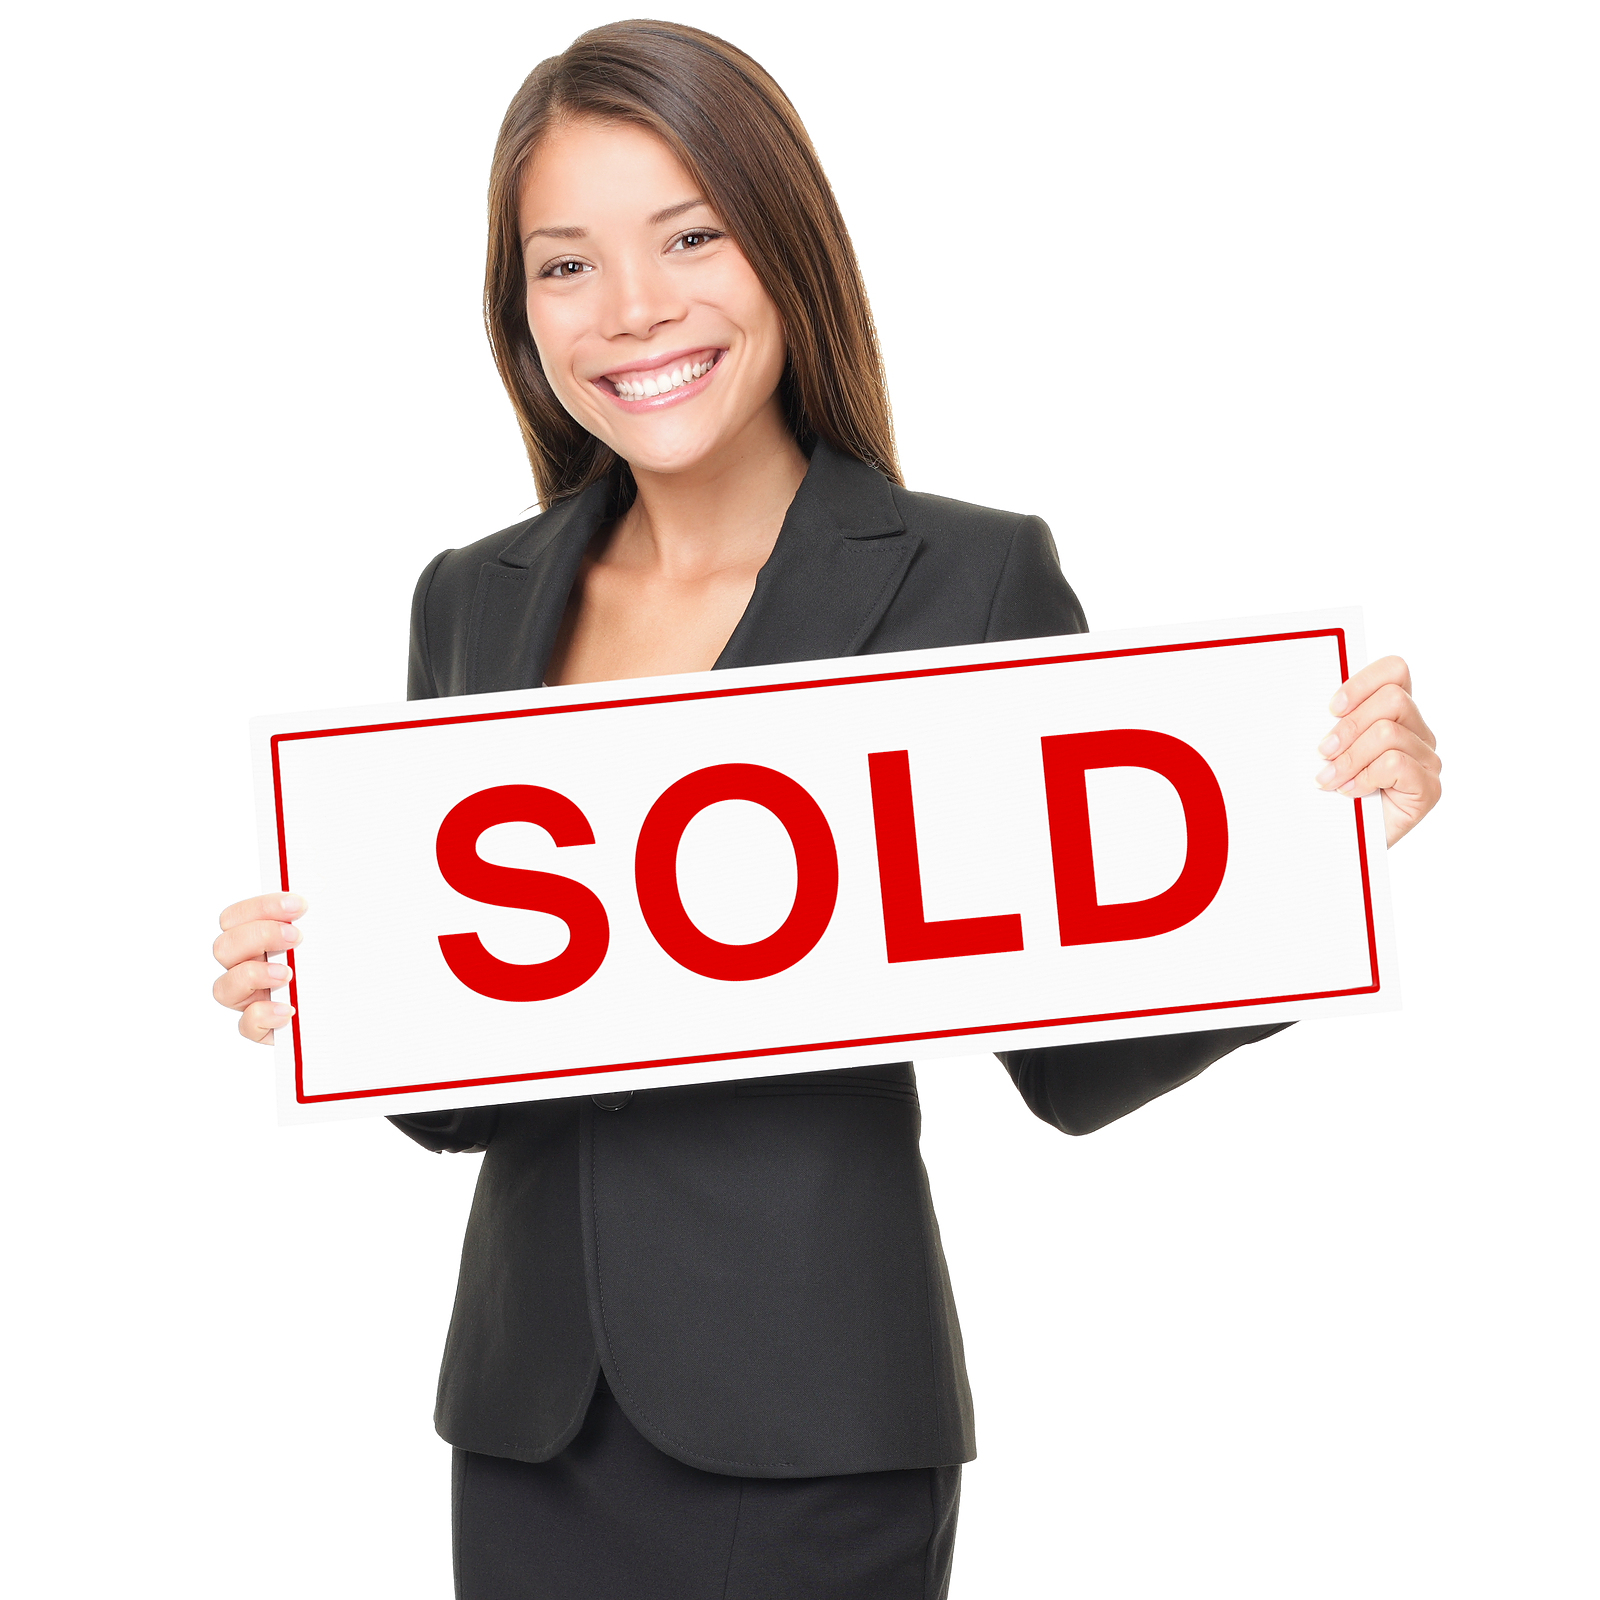 5 Tips for Finding the Perfect Real Estate Agent  Money Summit  Wealth Expo